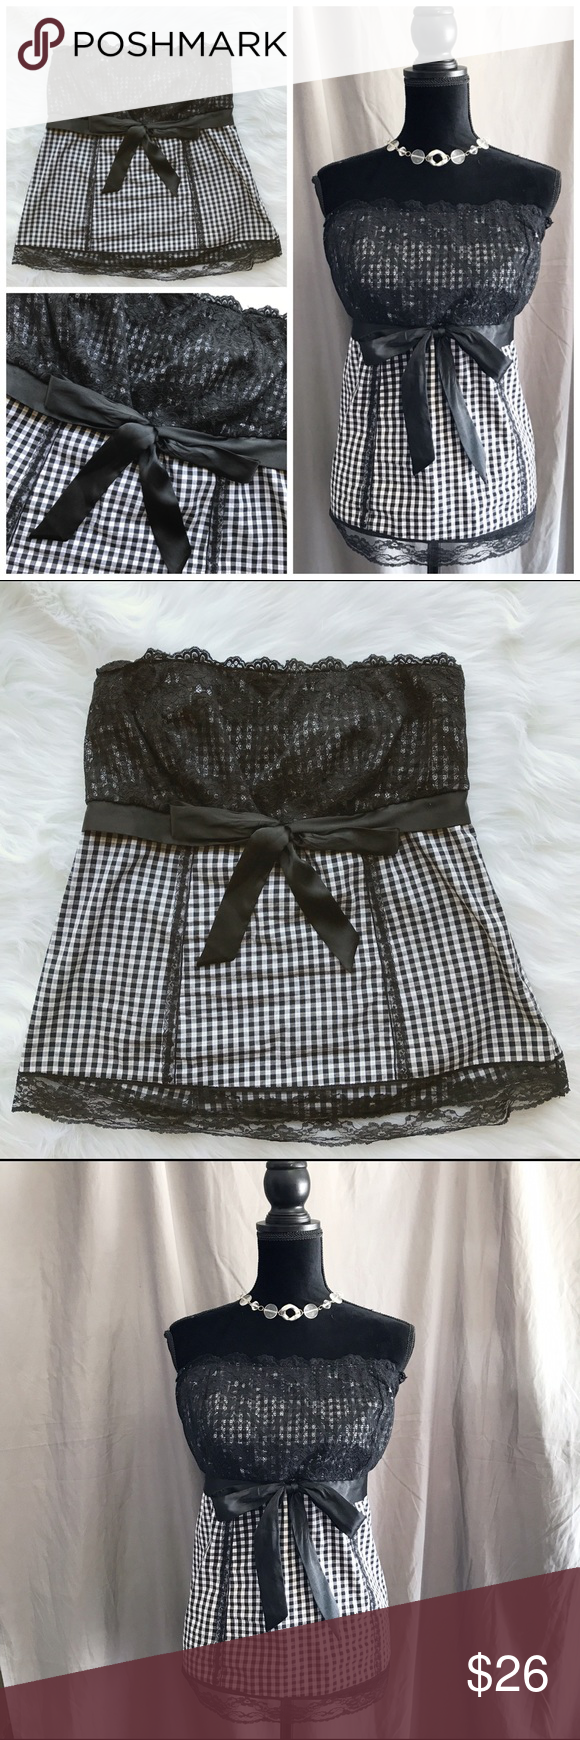 Torrid Gingham Lace Strapless Corset Style Top 1X Adorable black ...